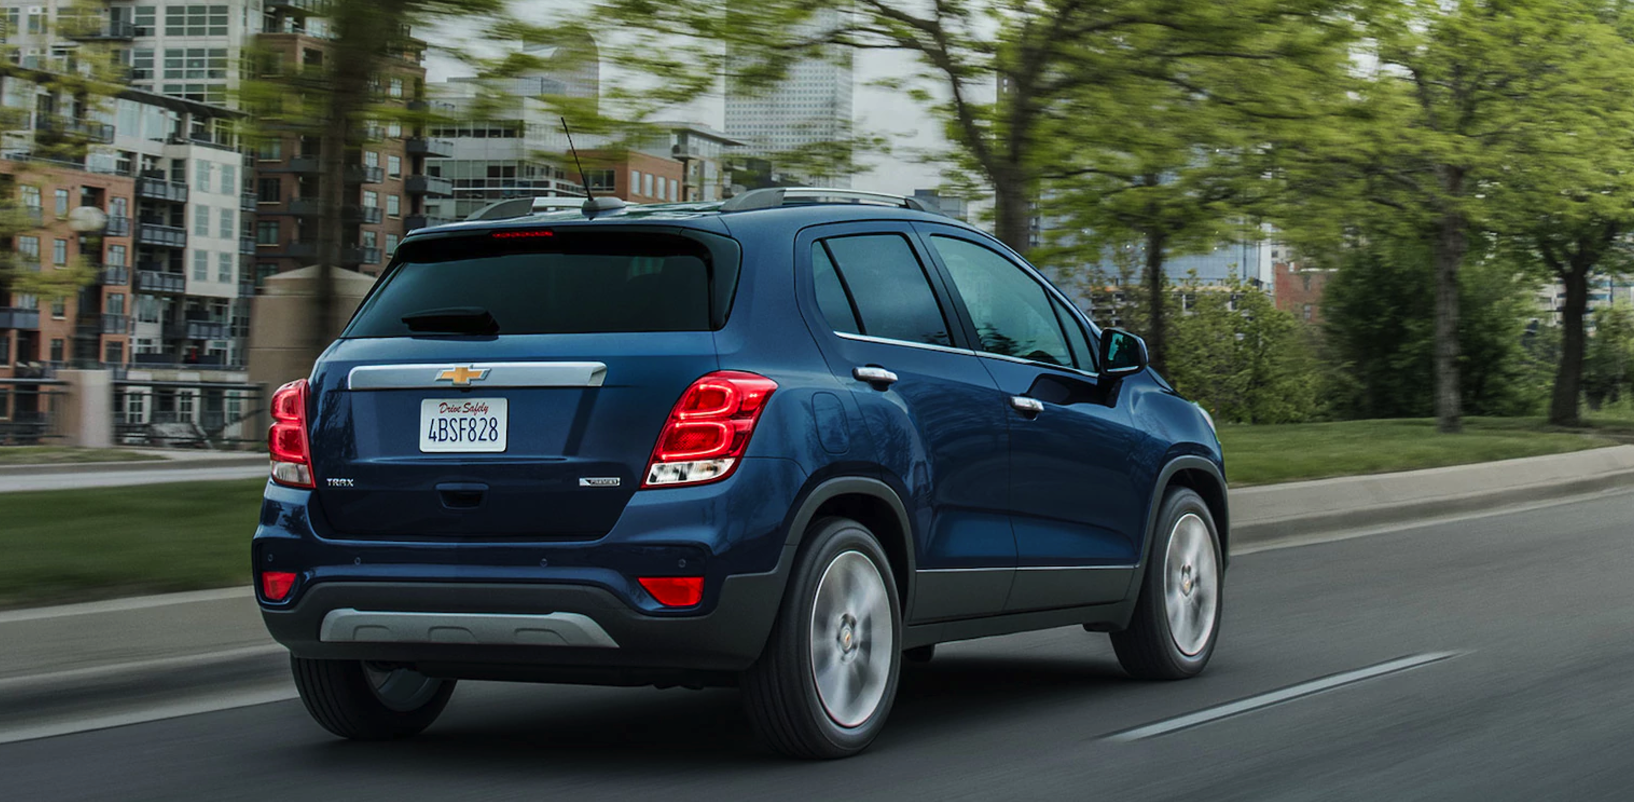 2018 chevrolet trax. Exellent Chevrolet 2018 Chevrolet Trax While Youu0027re In Feel Free To Check Out Any Of Our  Currently In Stock Trax Models And See If We Can Find The Right Deal For You And Chevrolet Trax